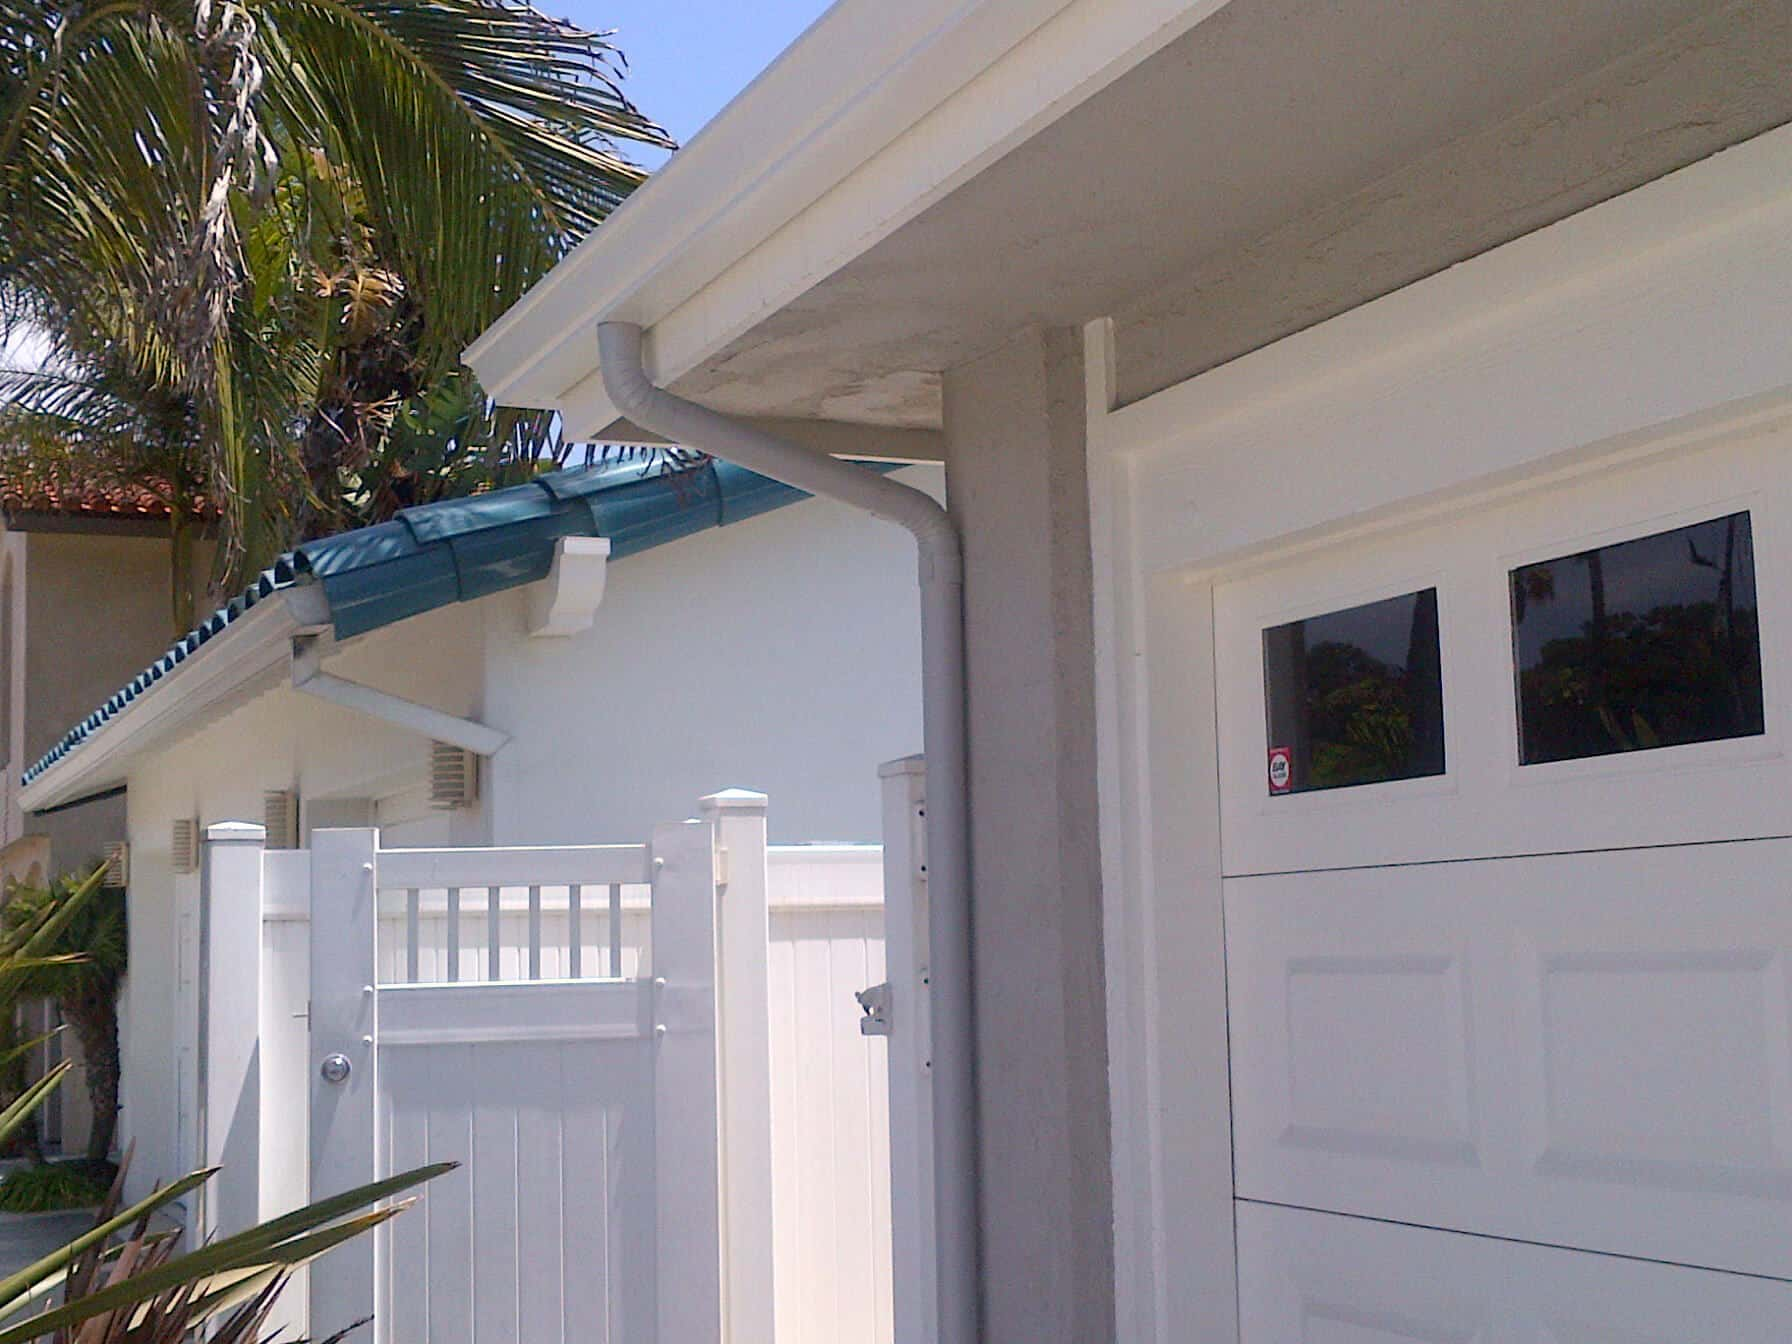 Santa Barbara Rain Gutter Repair Rain Gutter Cleaning Ventura County